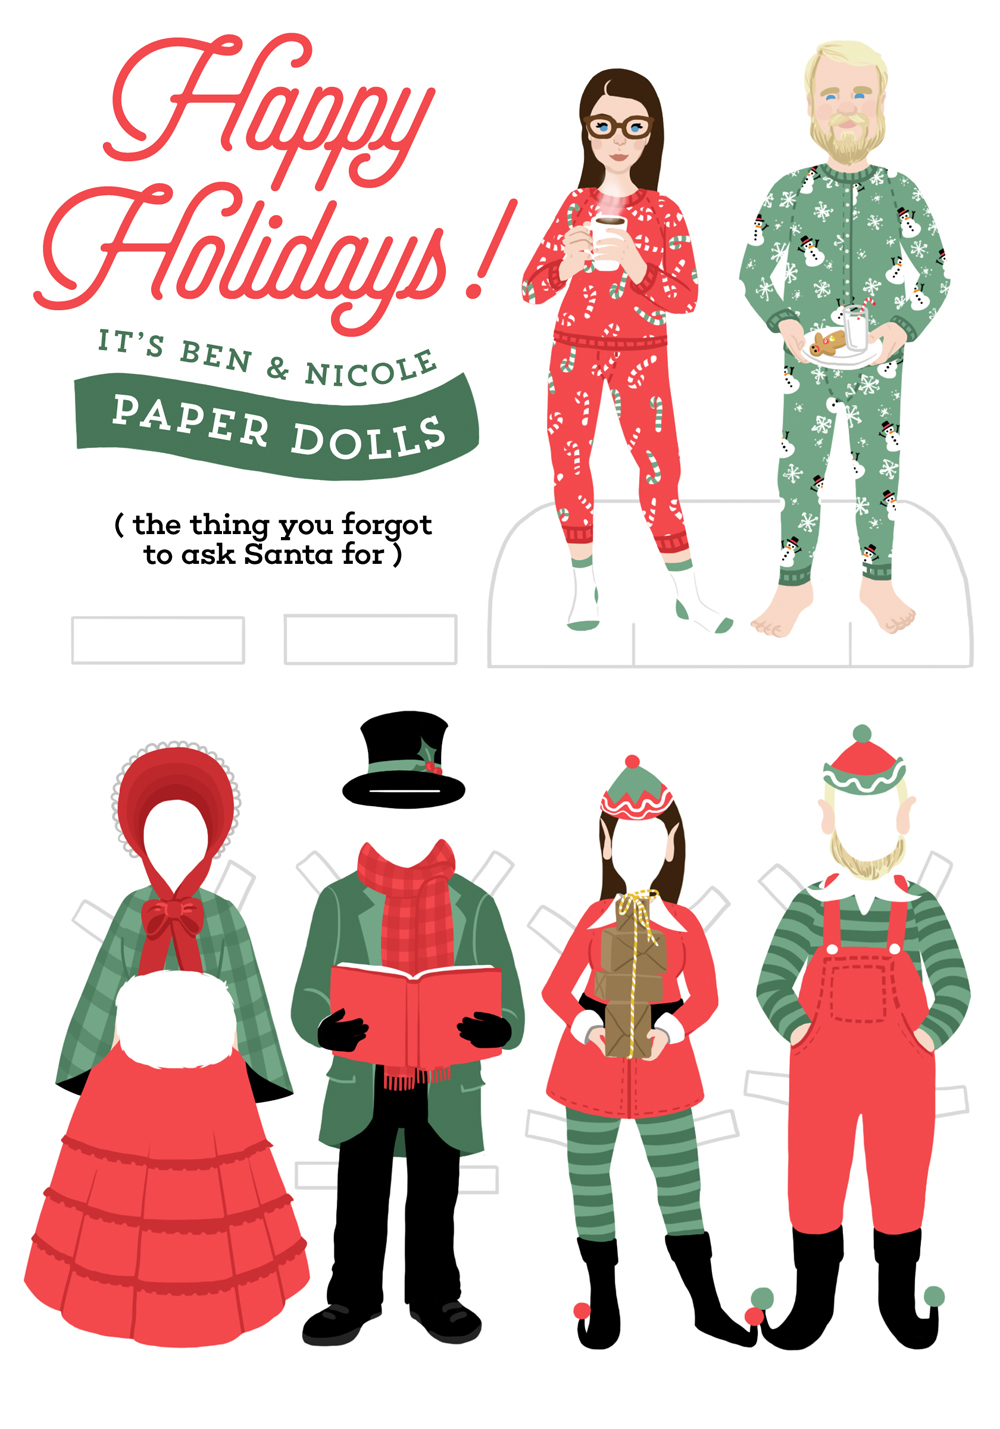 2014: Paper Dolls | This design was, hands down, our most popular Christmas card to date. Paper doll versions of my husband and I filled the front and back of a 5x7 greeting card. A message was handwritten on the inside, and the card could either be displayed with the top portion showing, or cut and assembled.